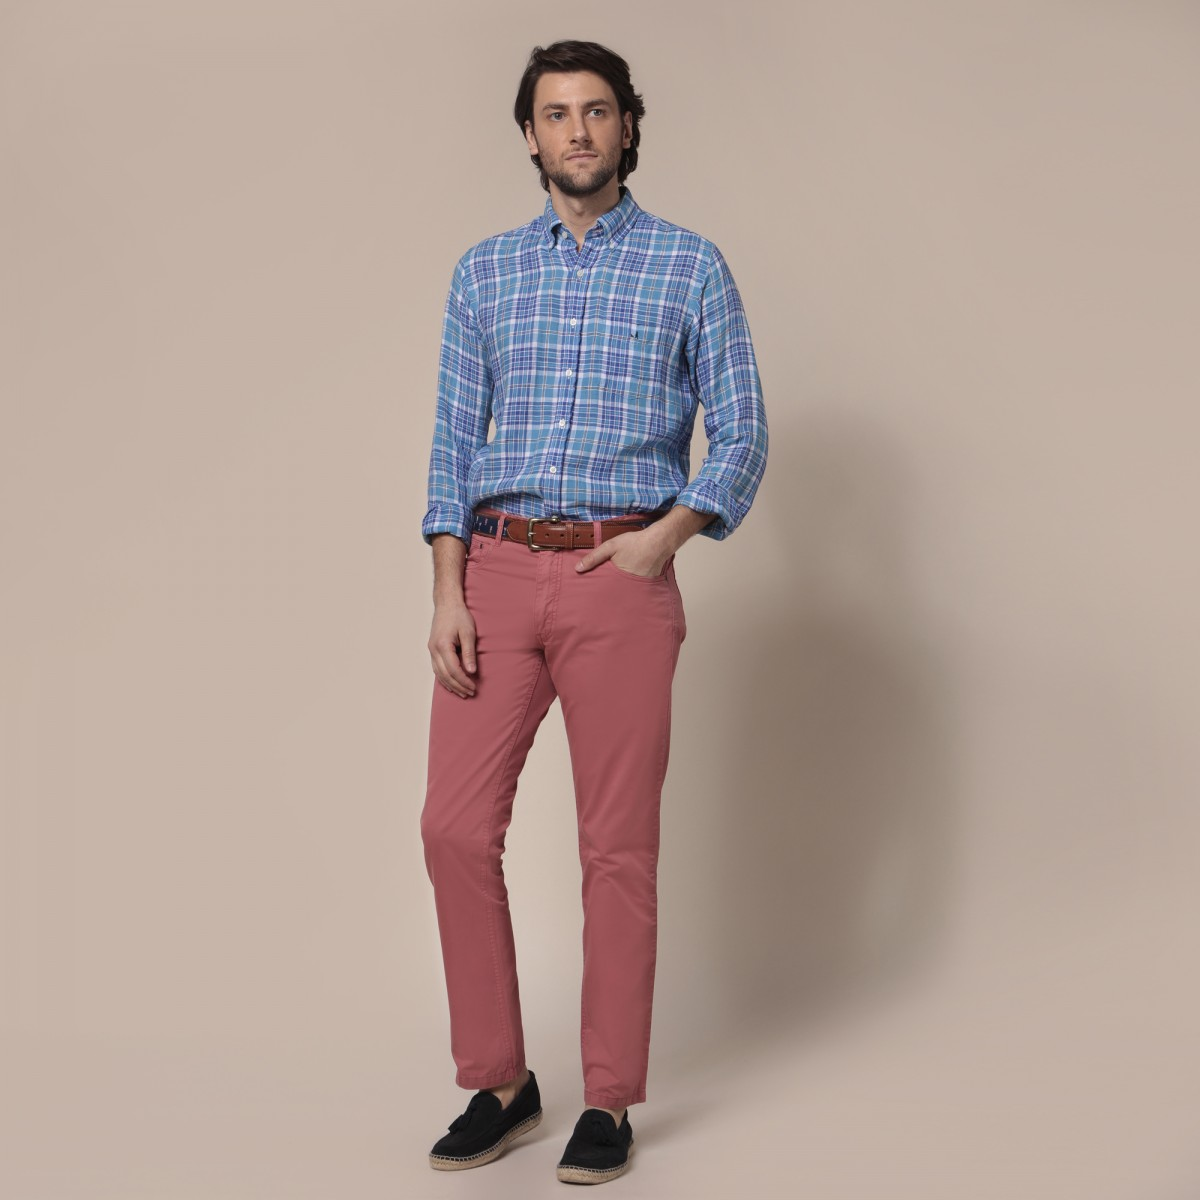 Pantalon 5 Pocket Calce Recto Twill Soft Liviano Teñido en Prenda.